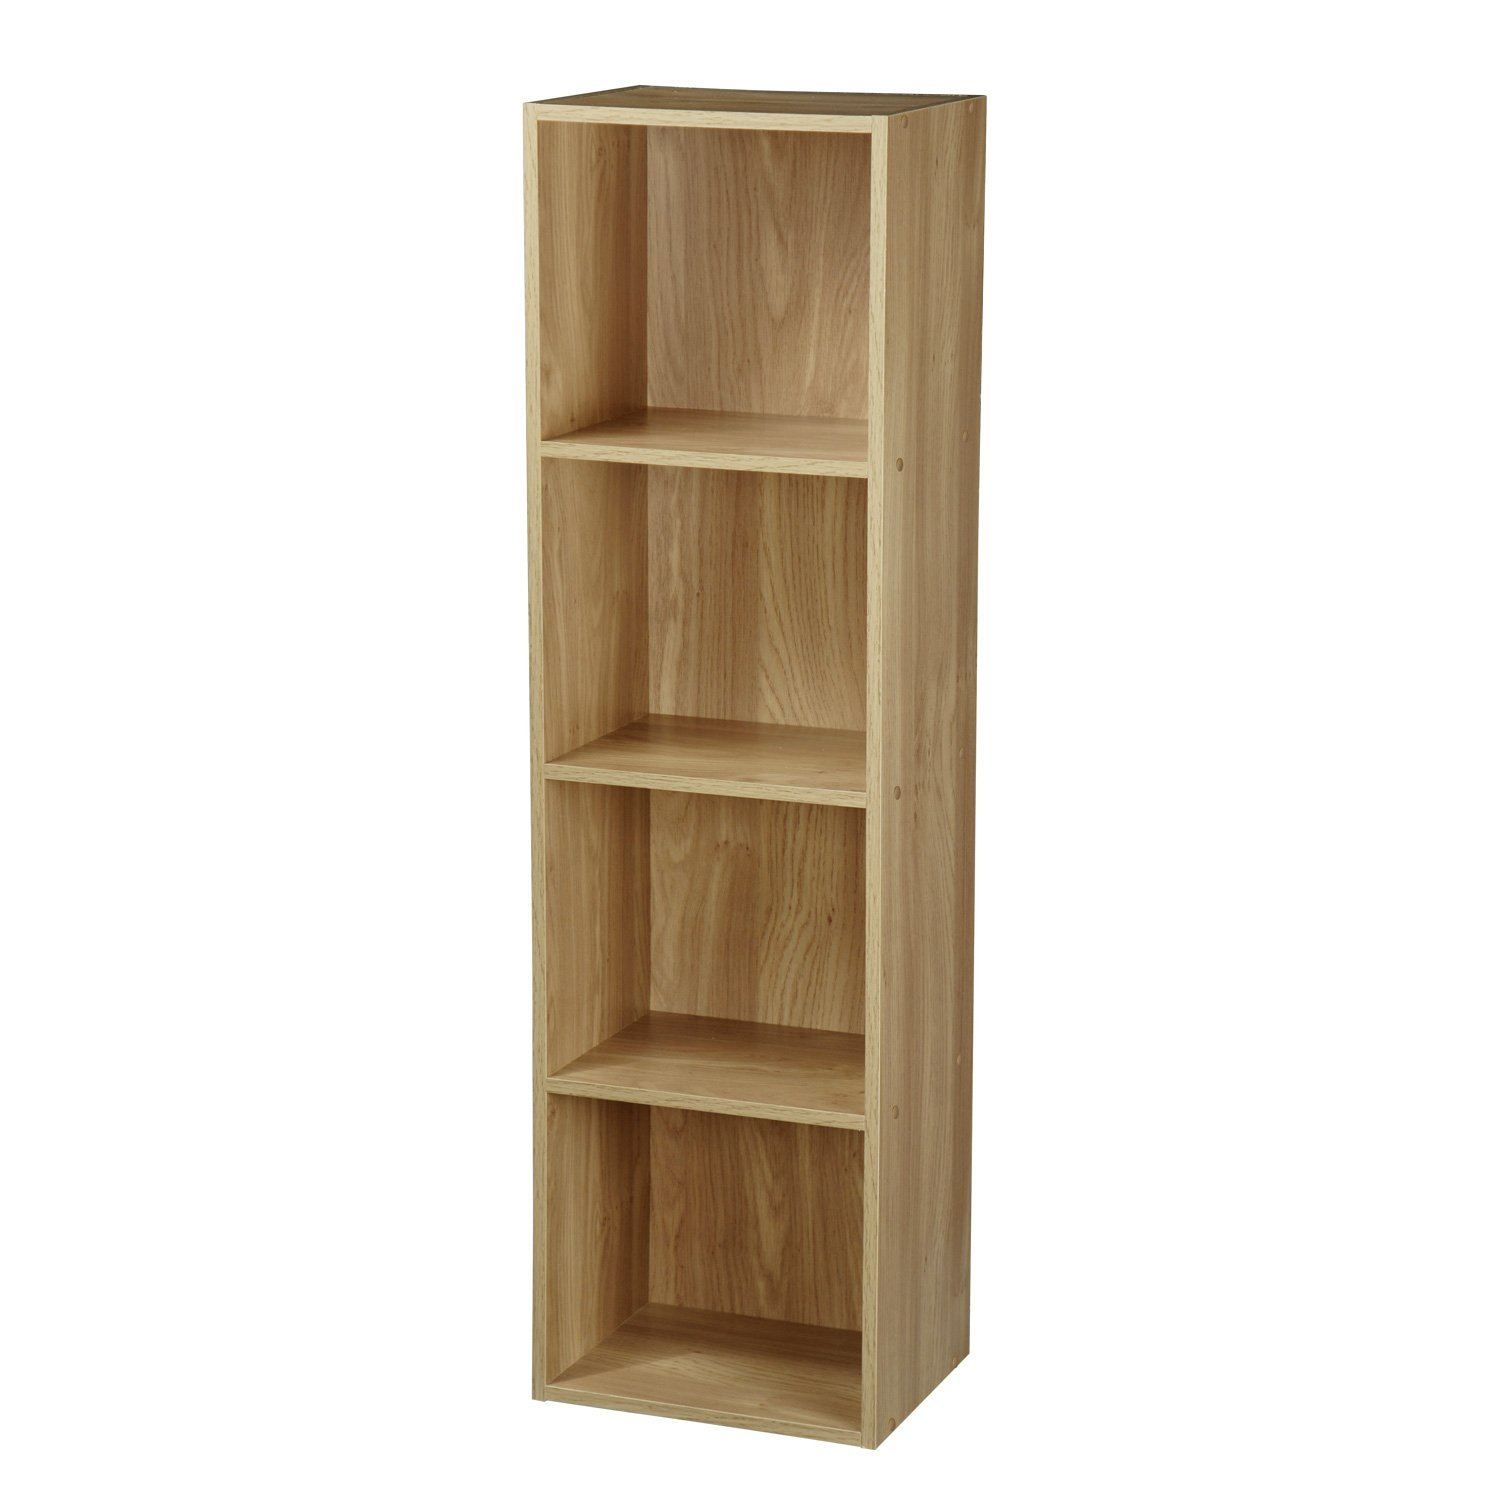 New wooden display storage units furniture shelve white